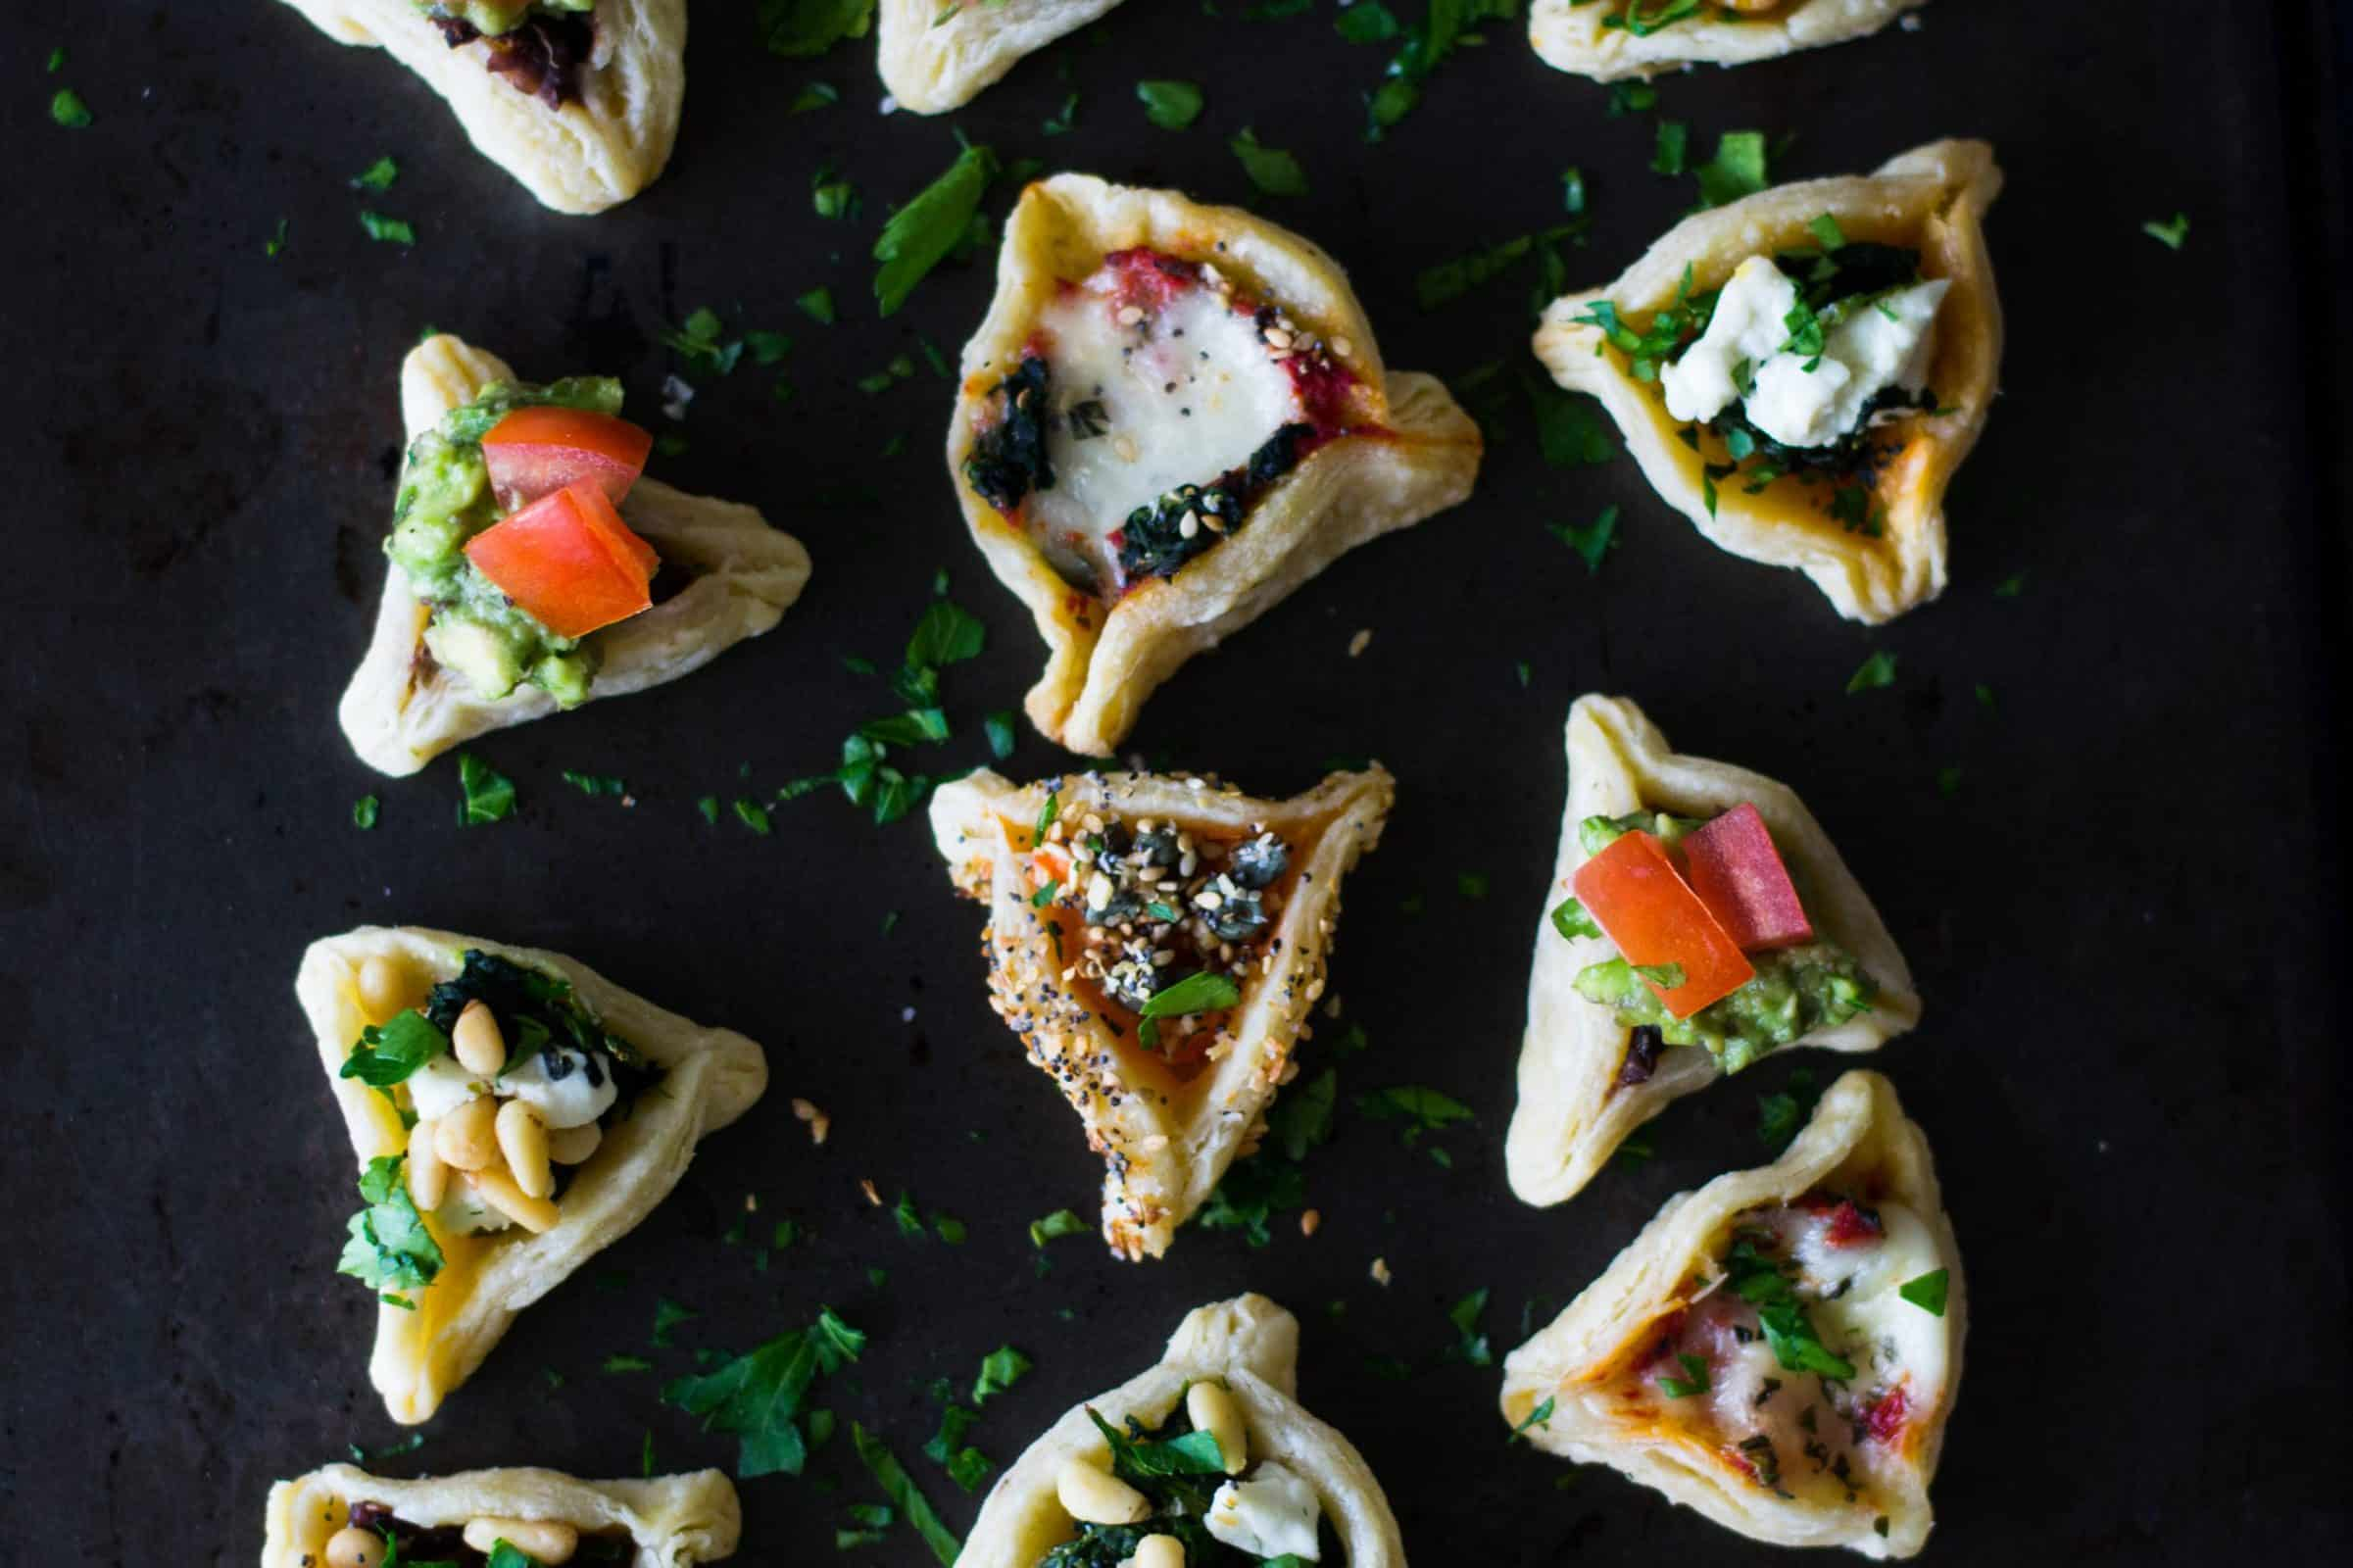 Savory hamantaschen bars with six different fillings